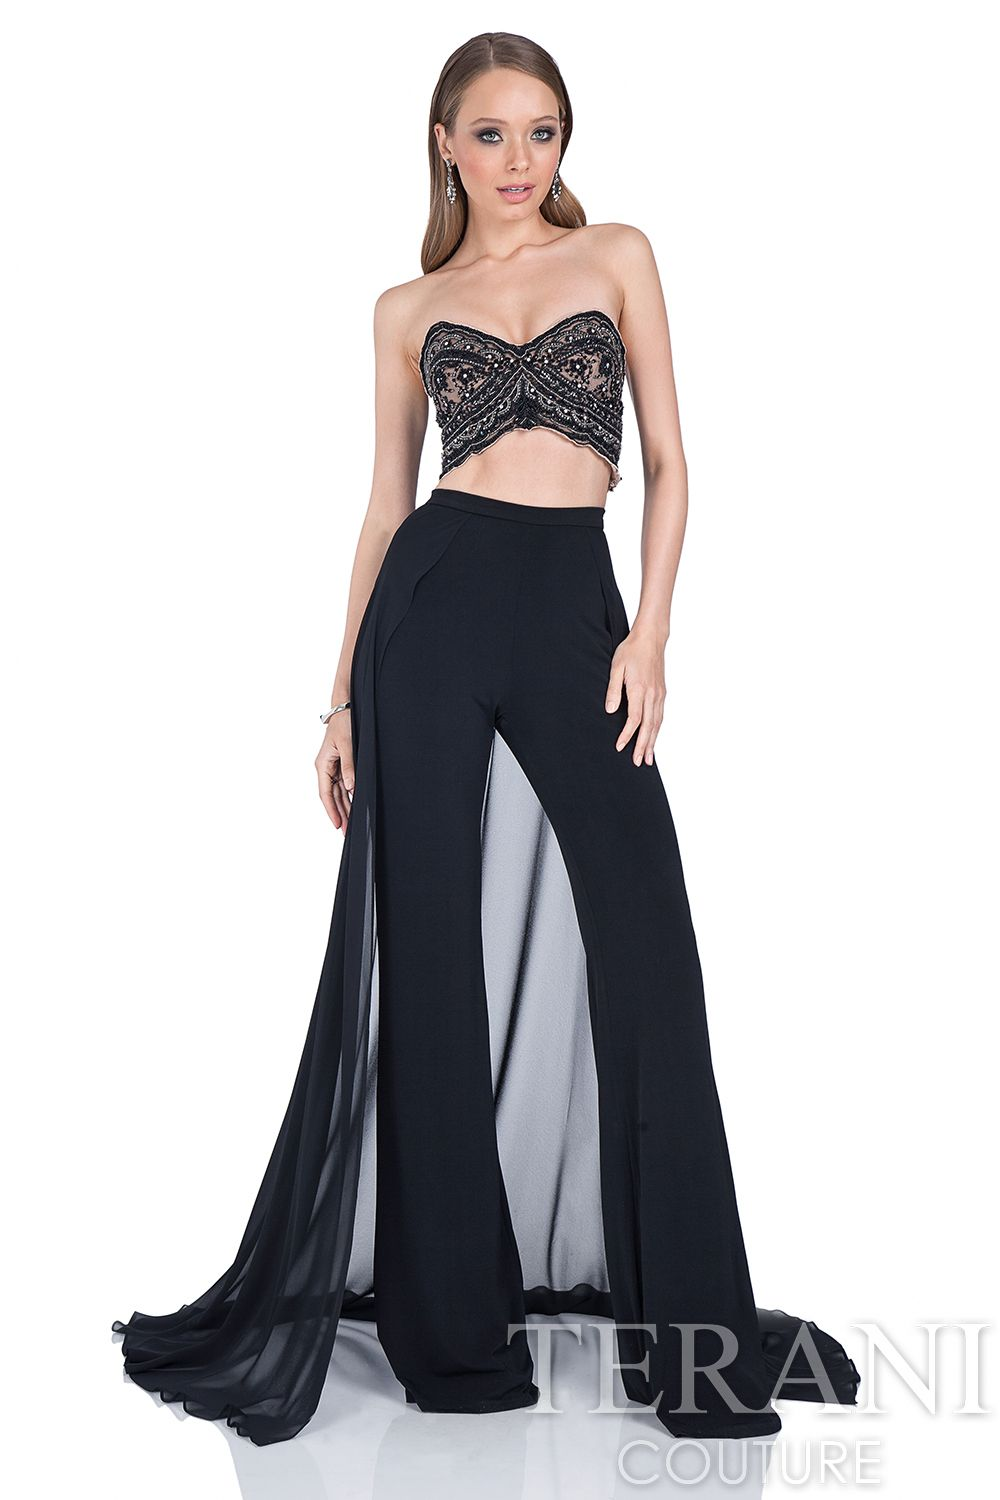 81b73ebb3d1 Two piece prom dress ensemble featuring a strapless beaded bustier. Visit  www.meranski.com for more!